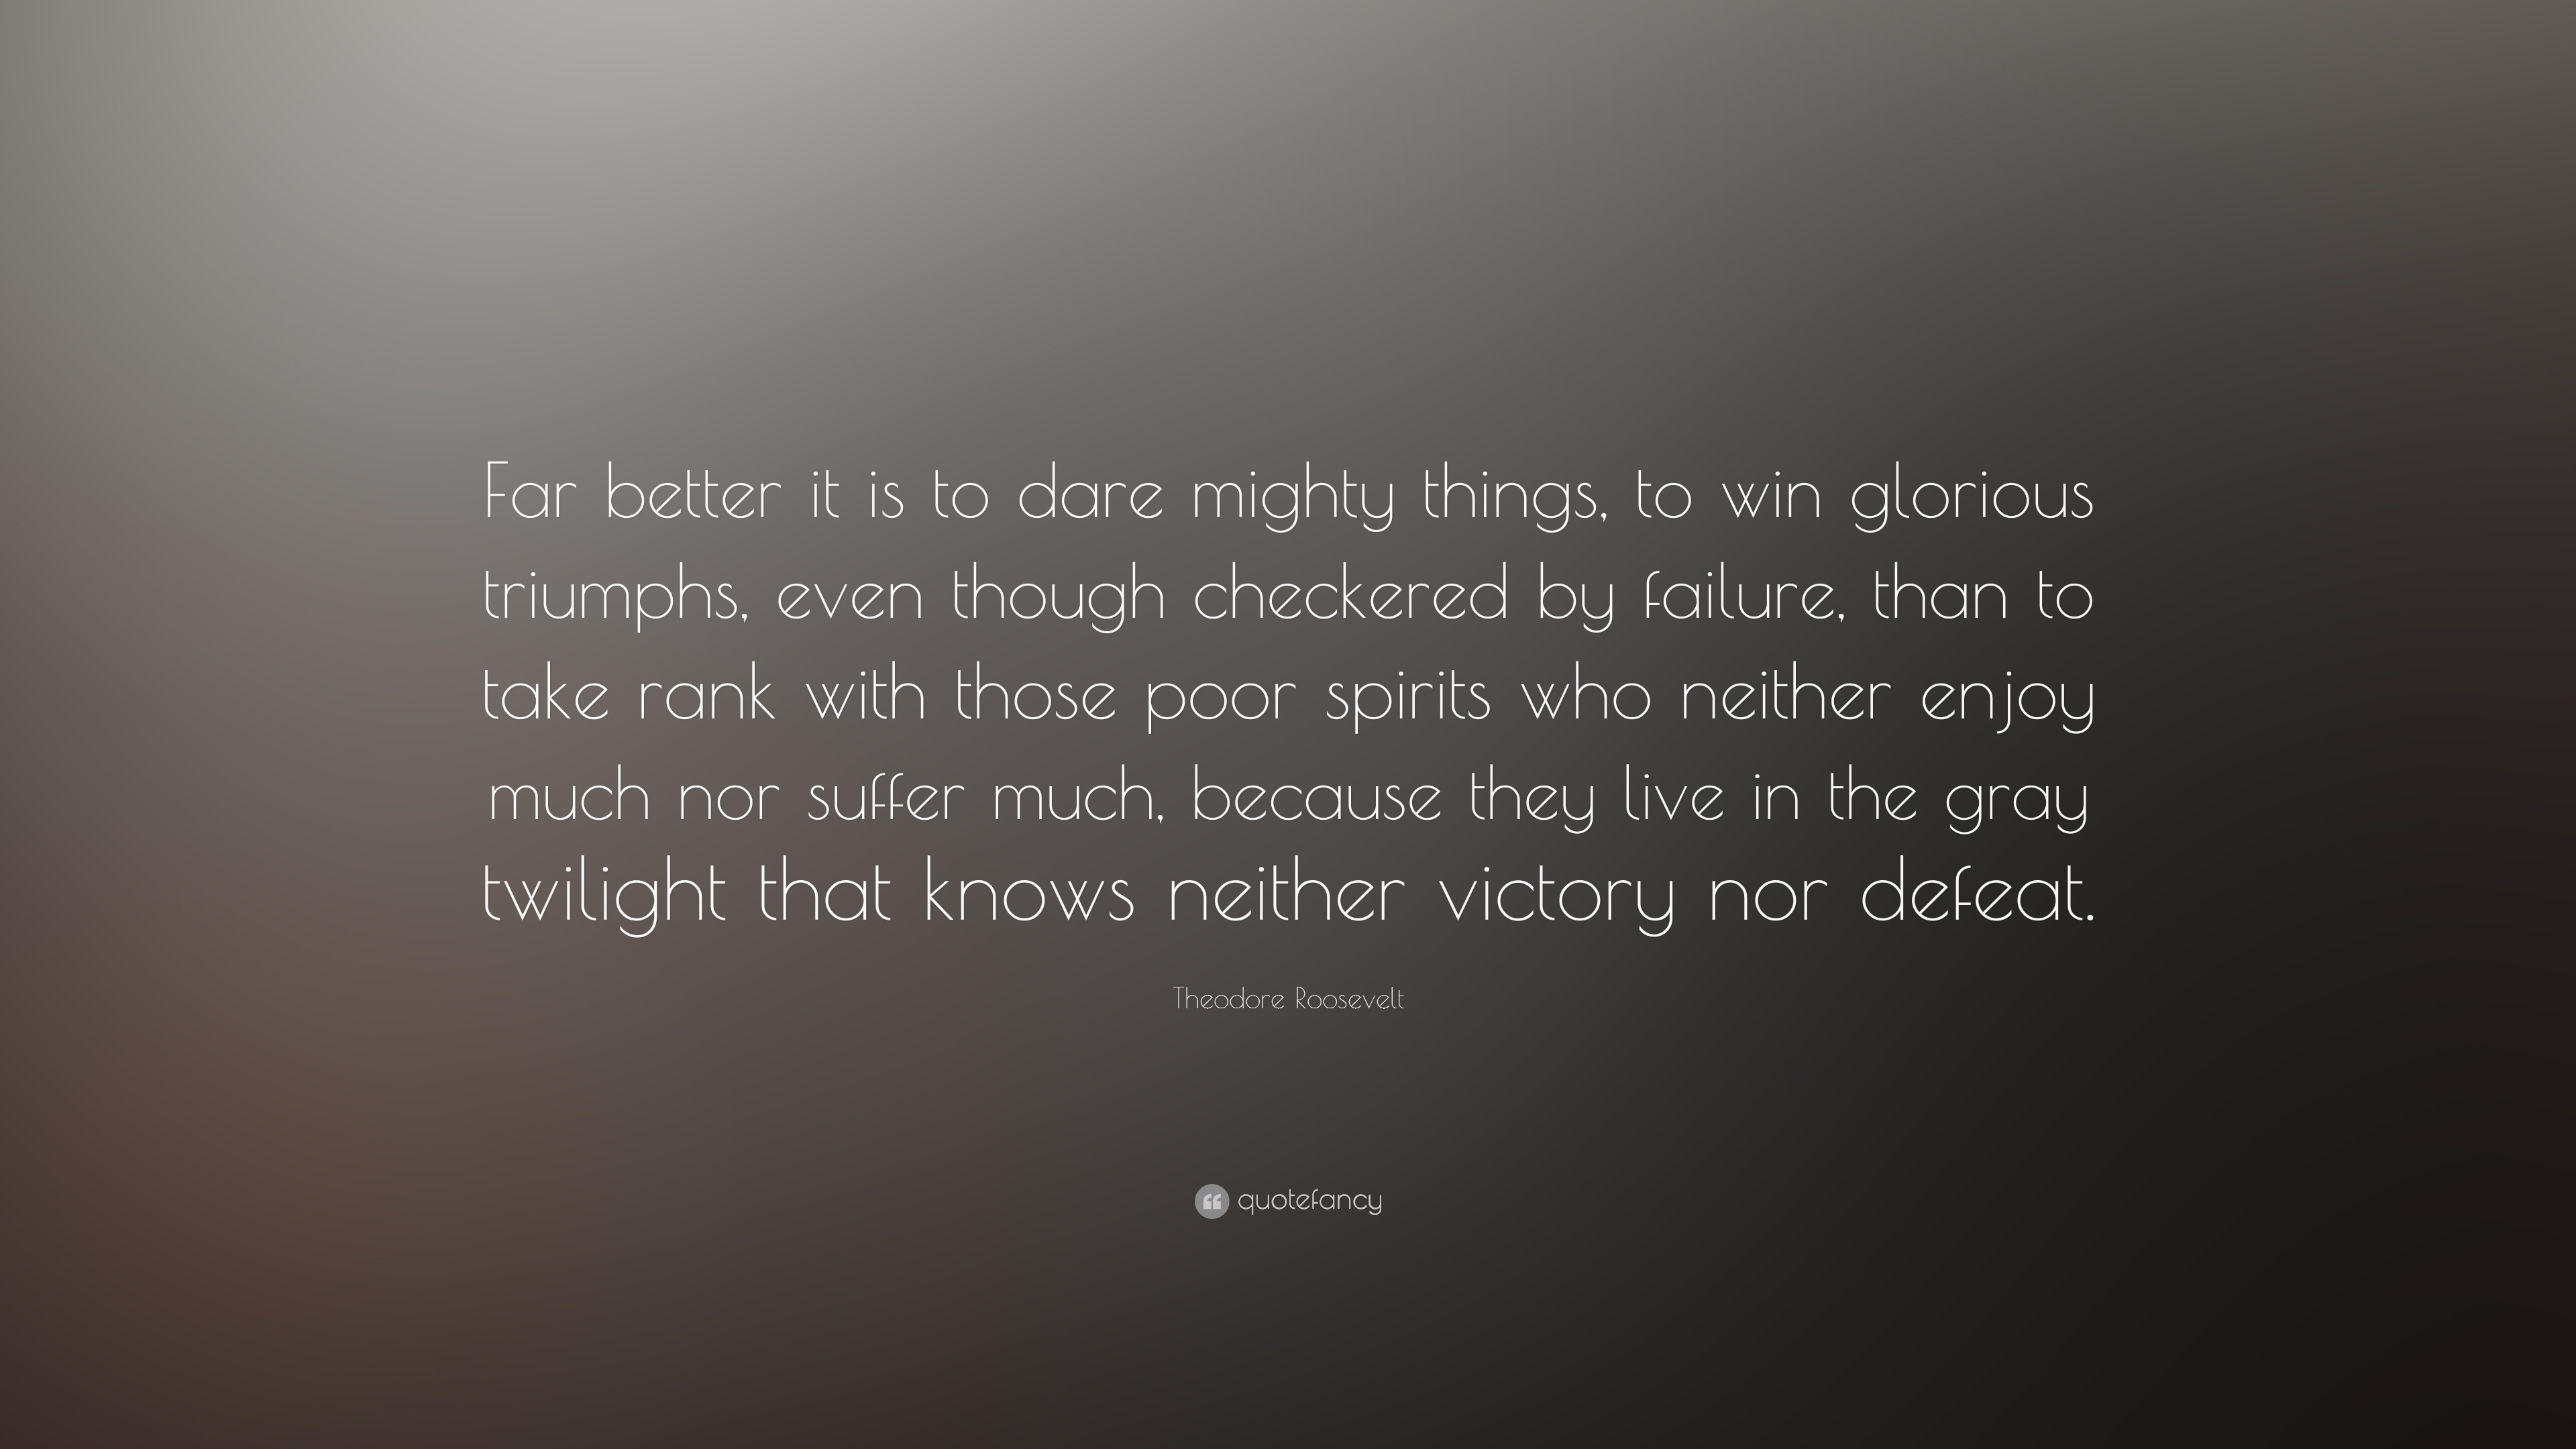 Theodore Roosevelt Quotes Theodore Roosevelt Quotes About Failure